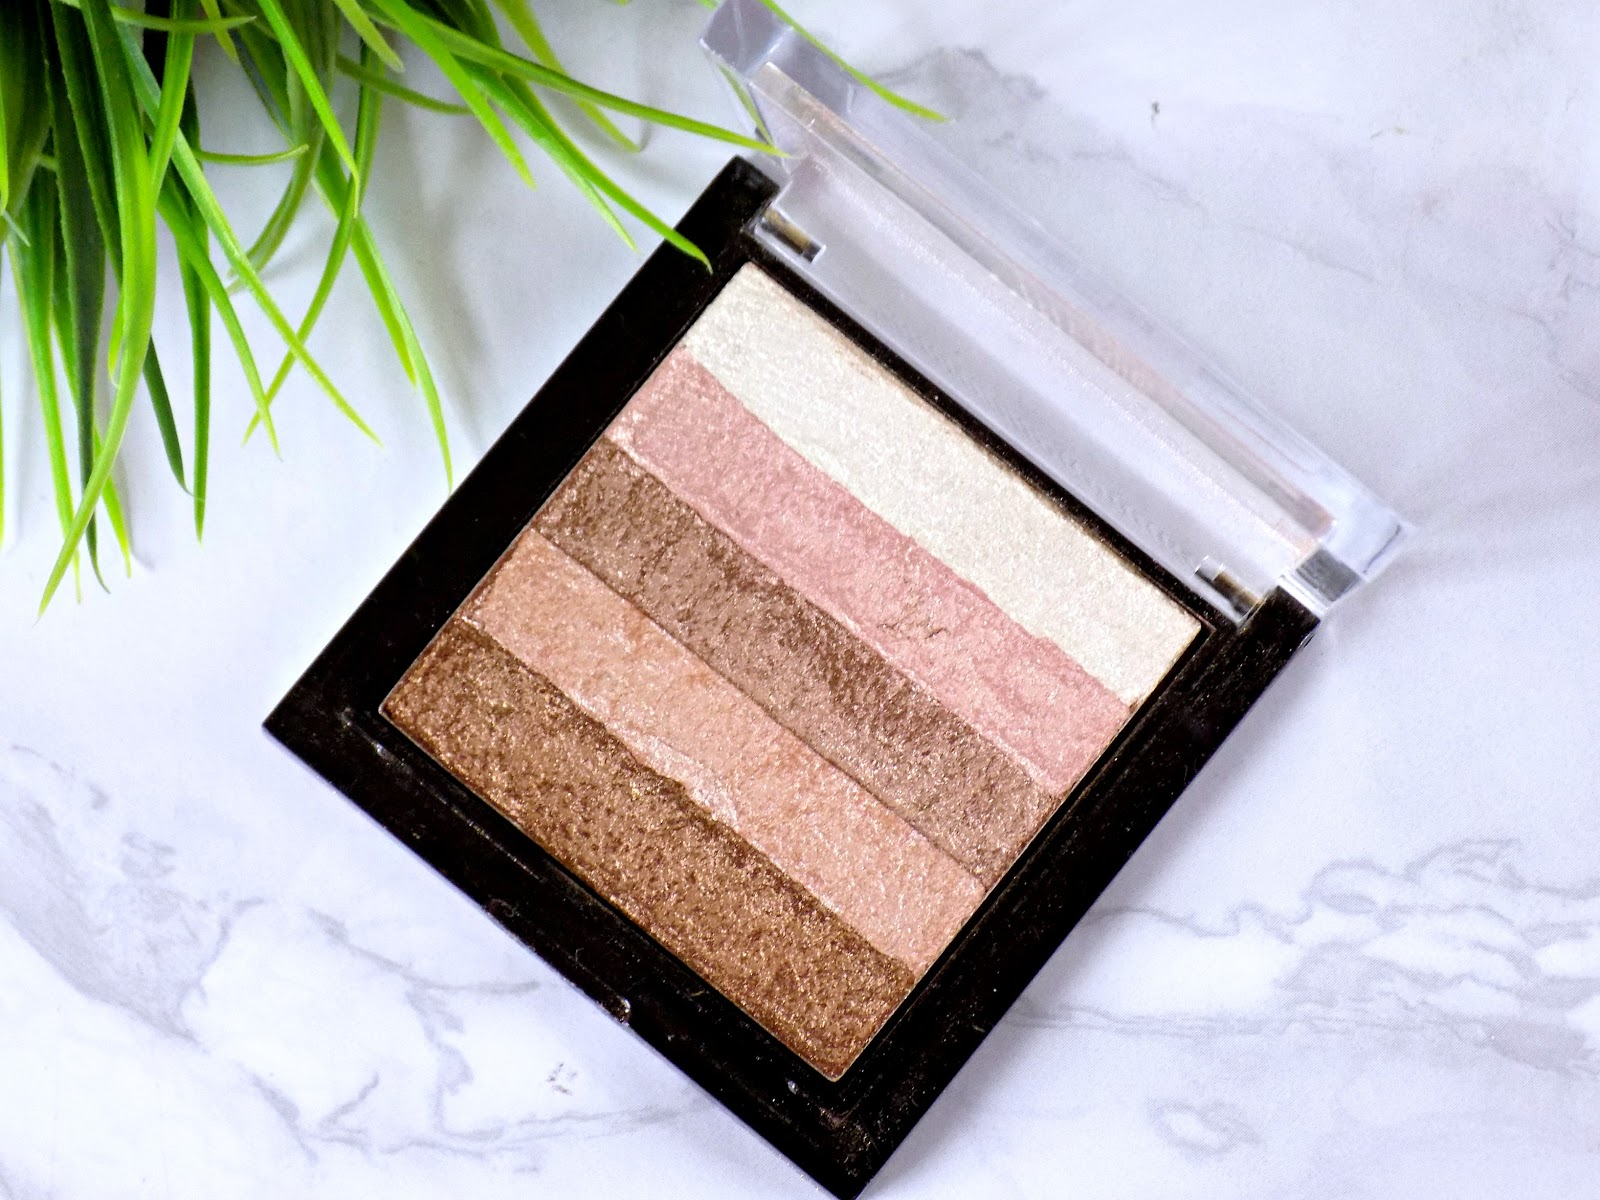 Makeup Revolution Shimmer Brick in Radiant